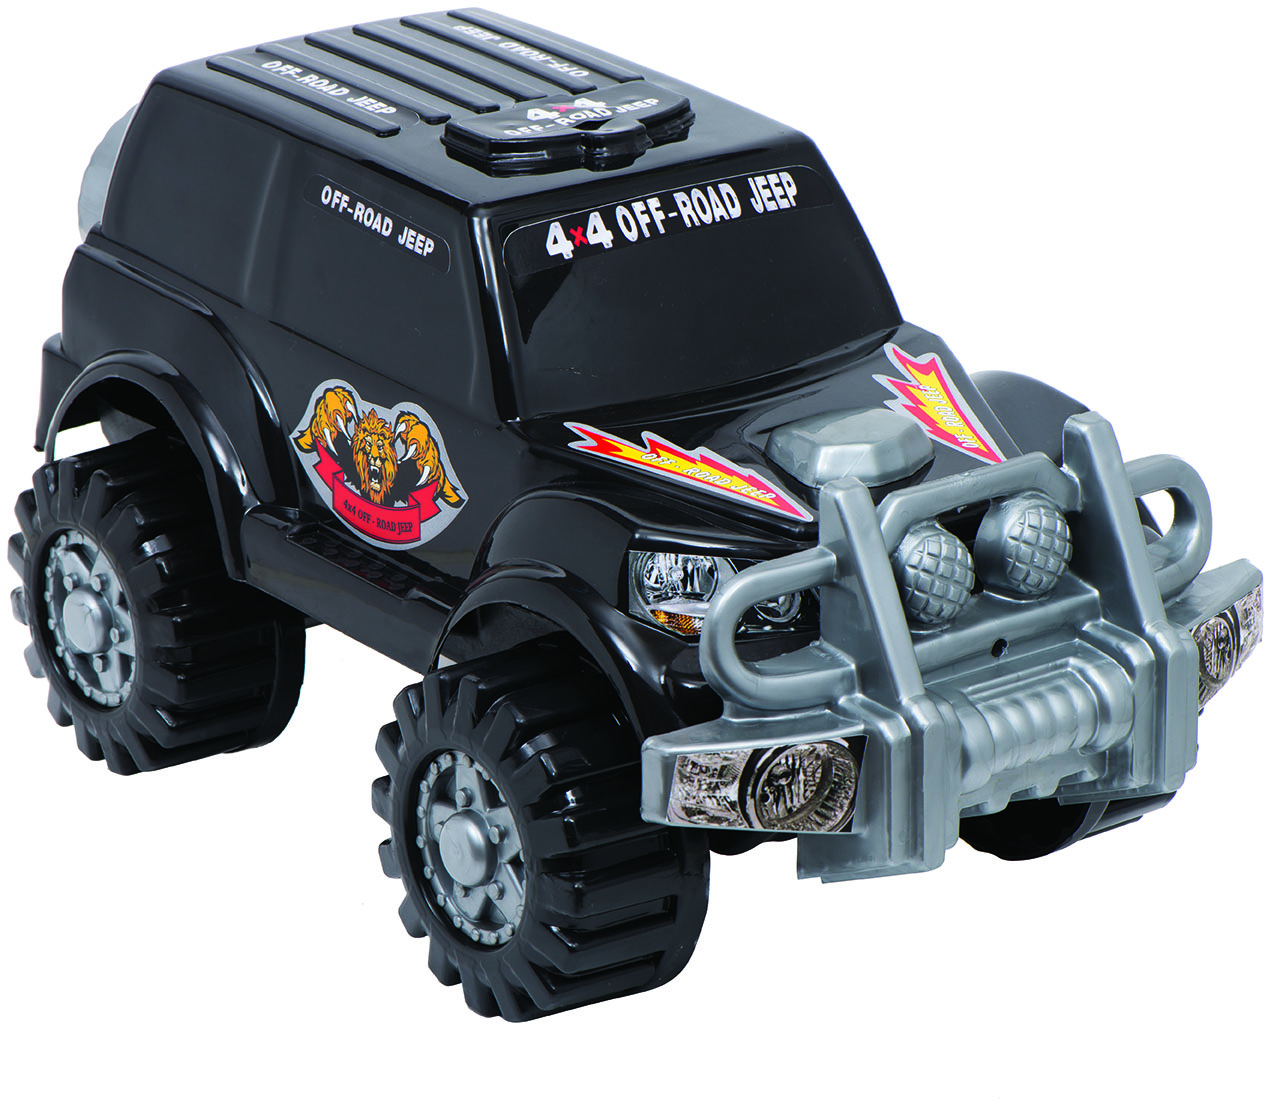 4x4 OFF ROAD JEEP (43 cm )